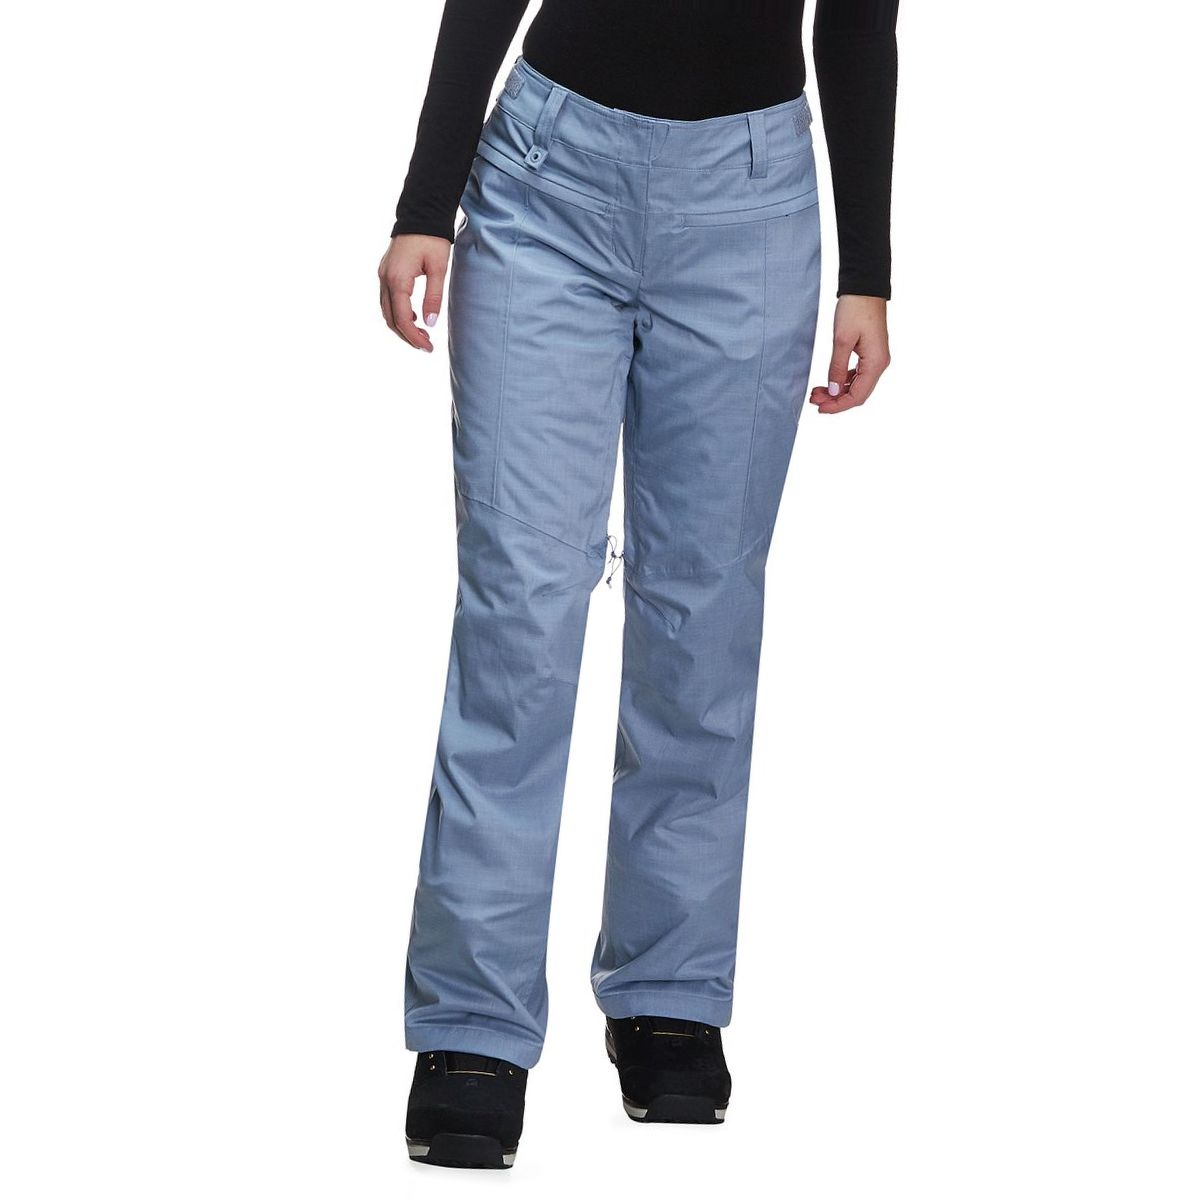 Under Armour Navigate Insulated Pant - Women's